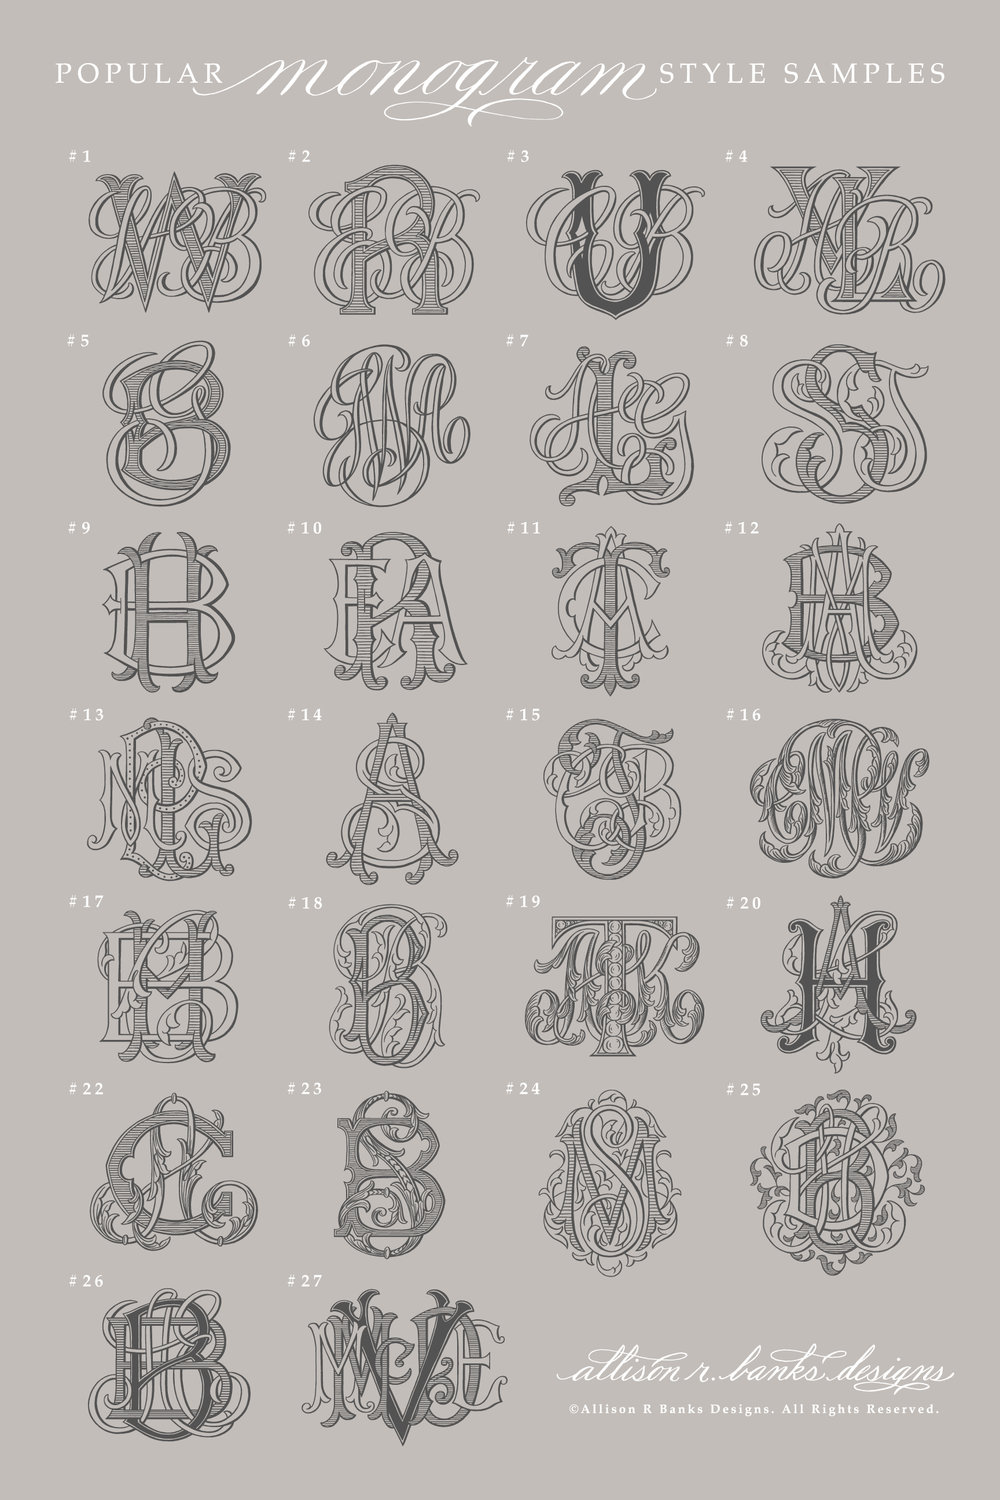 Popular-Monogram-Styles---Updated-Nov.2017.jpg